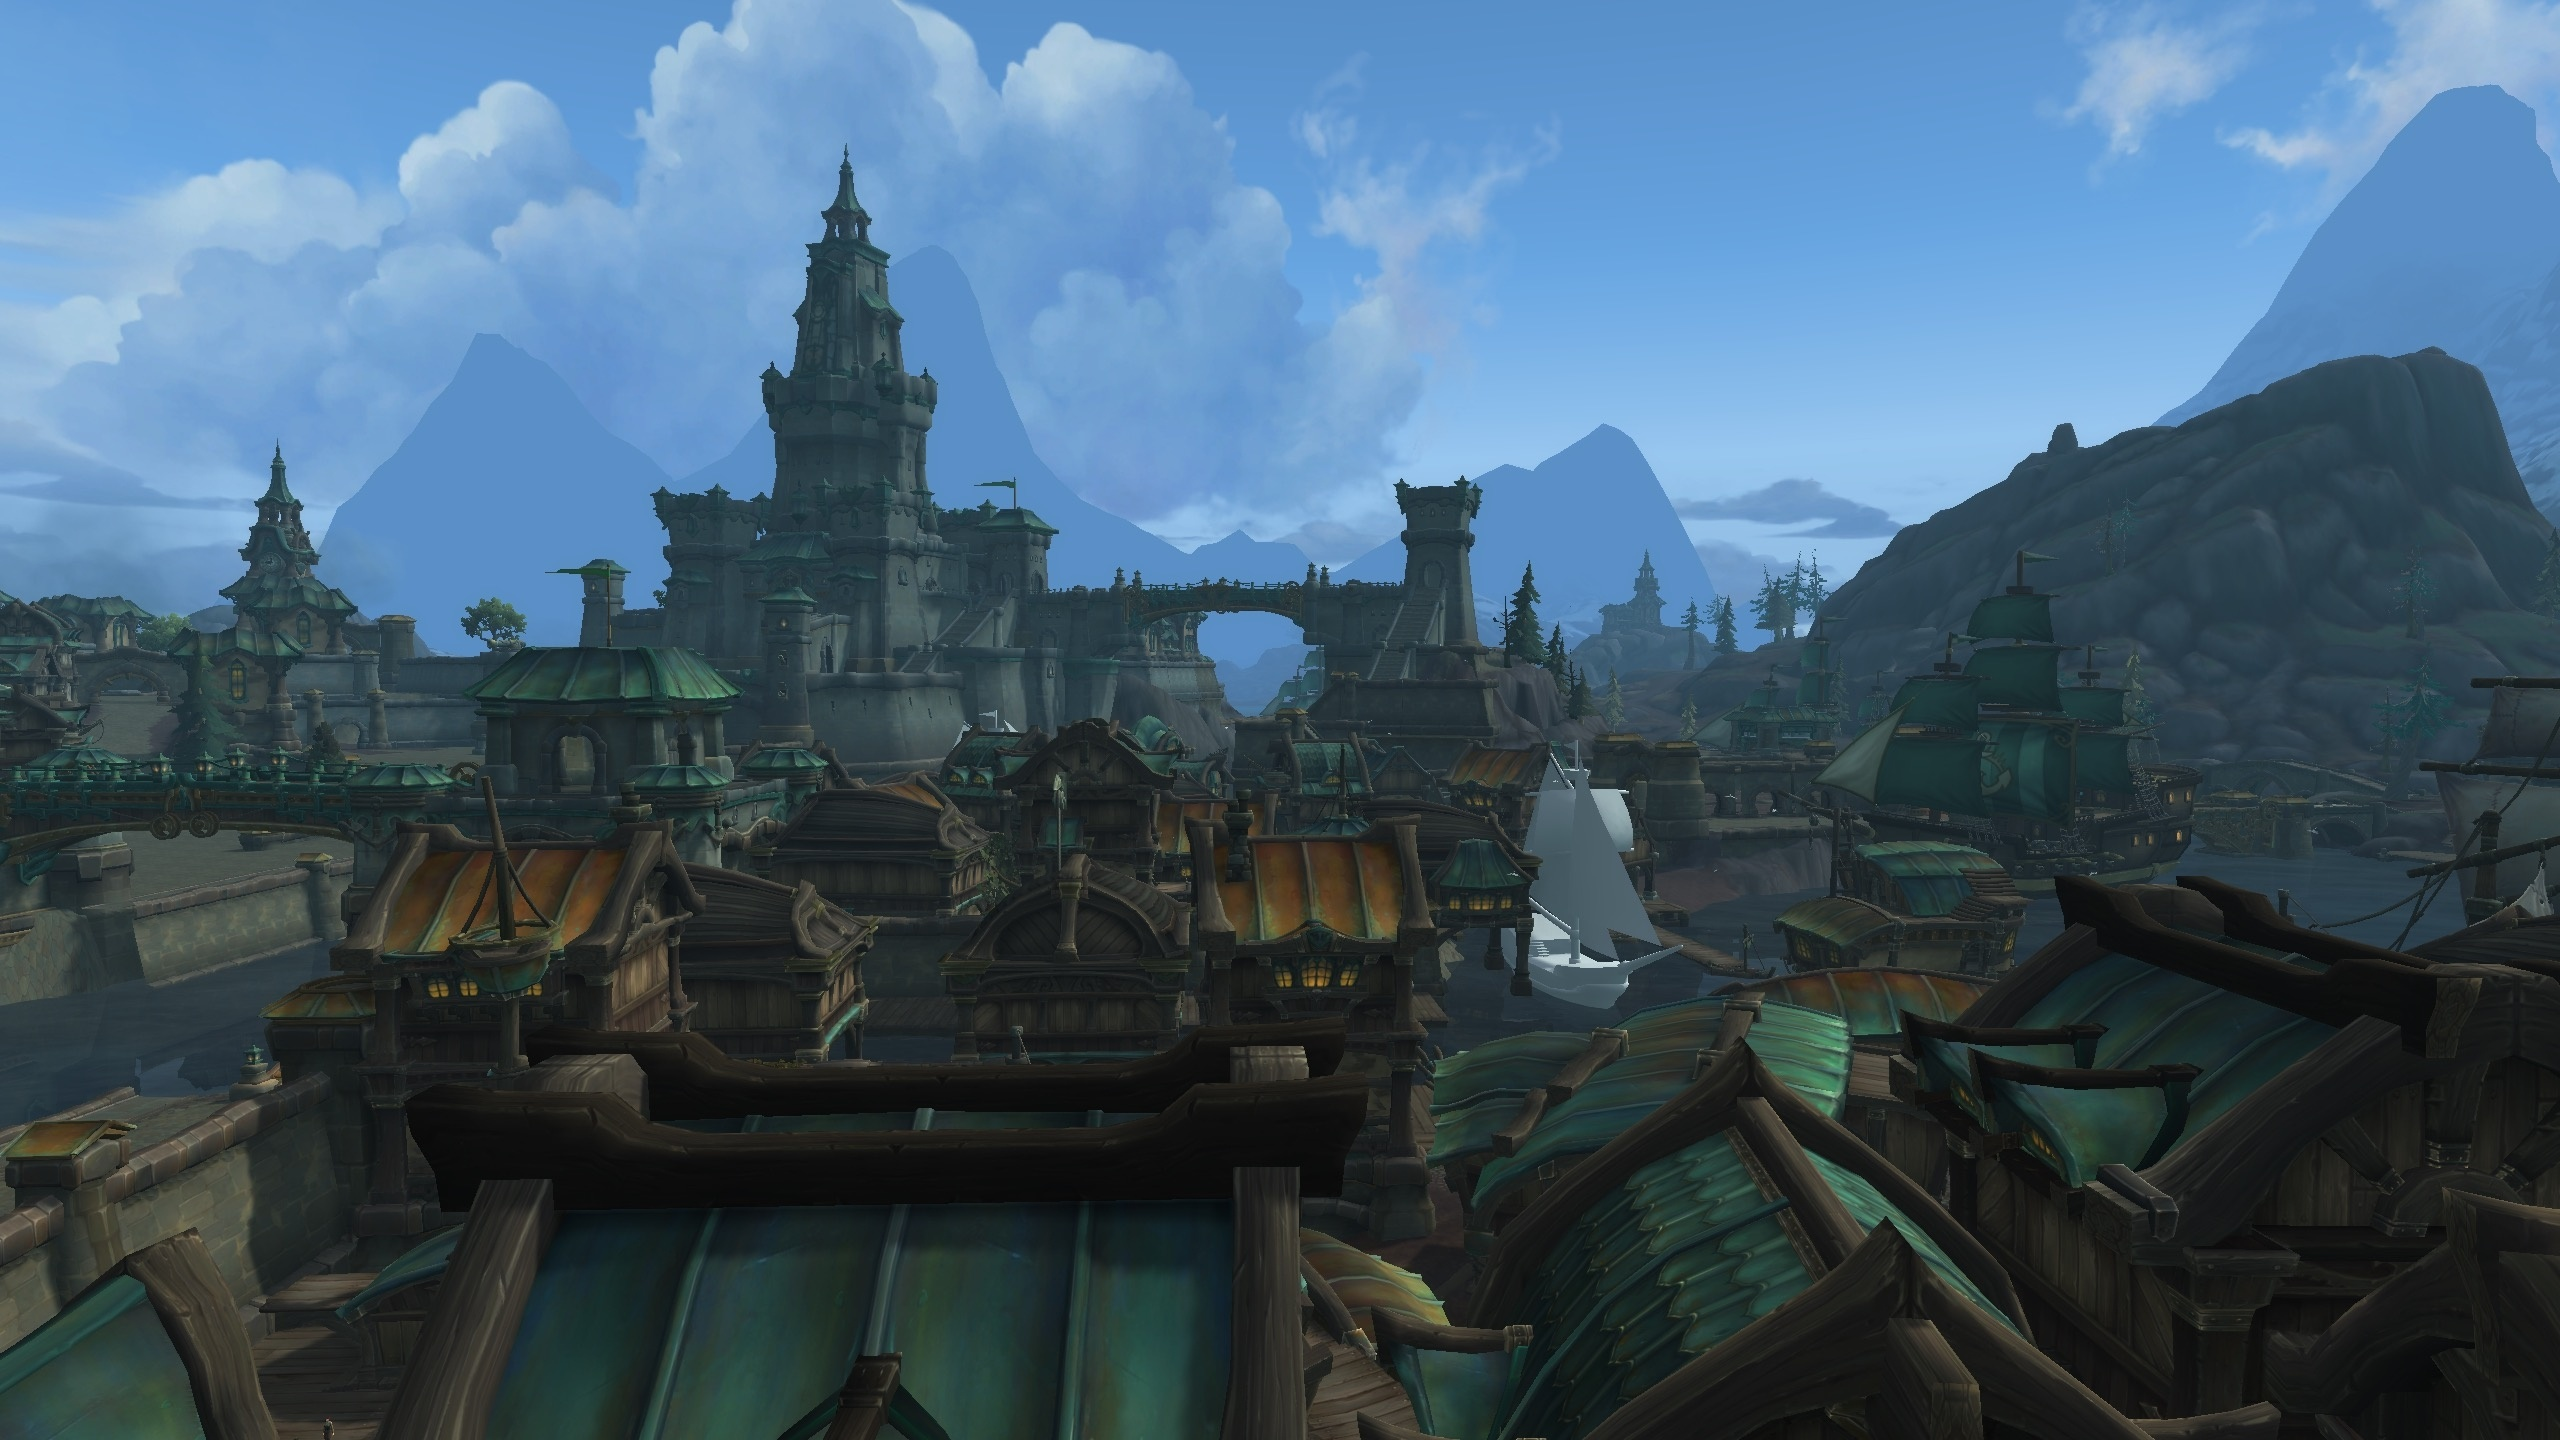 707766 boralus - Warcraft's cities and their real world equivalents